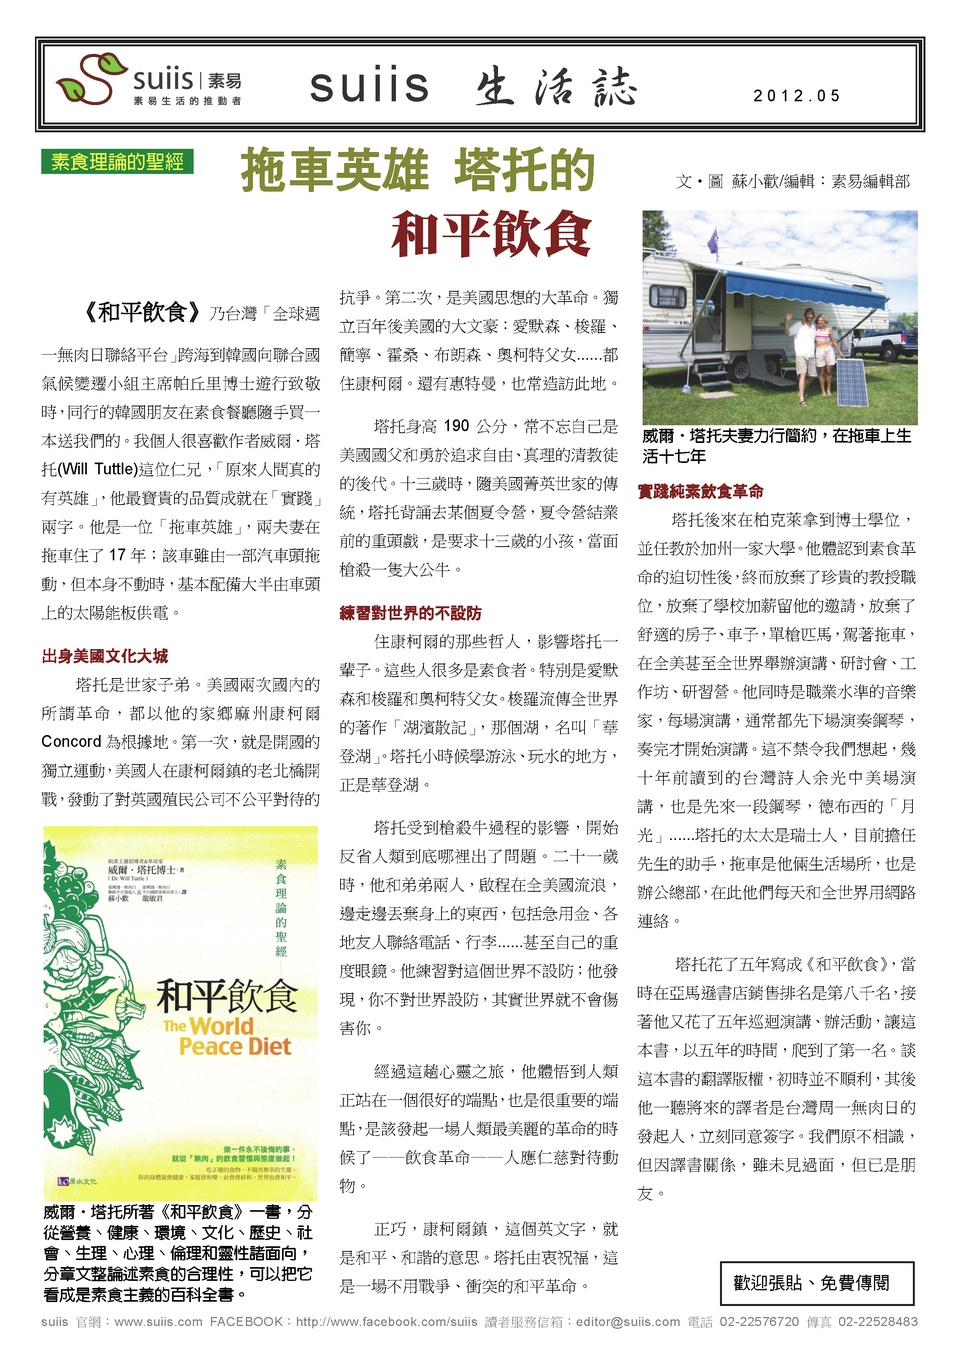 suiis 生活誌-2012-05_Page_1